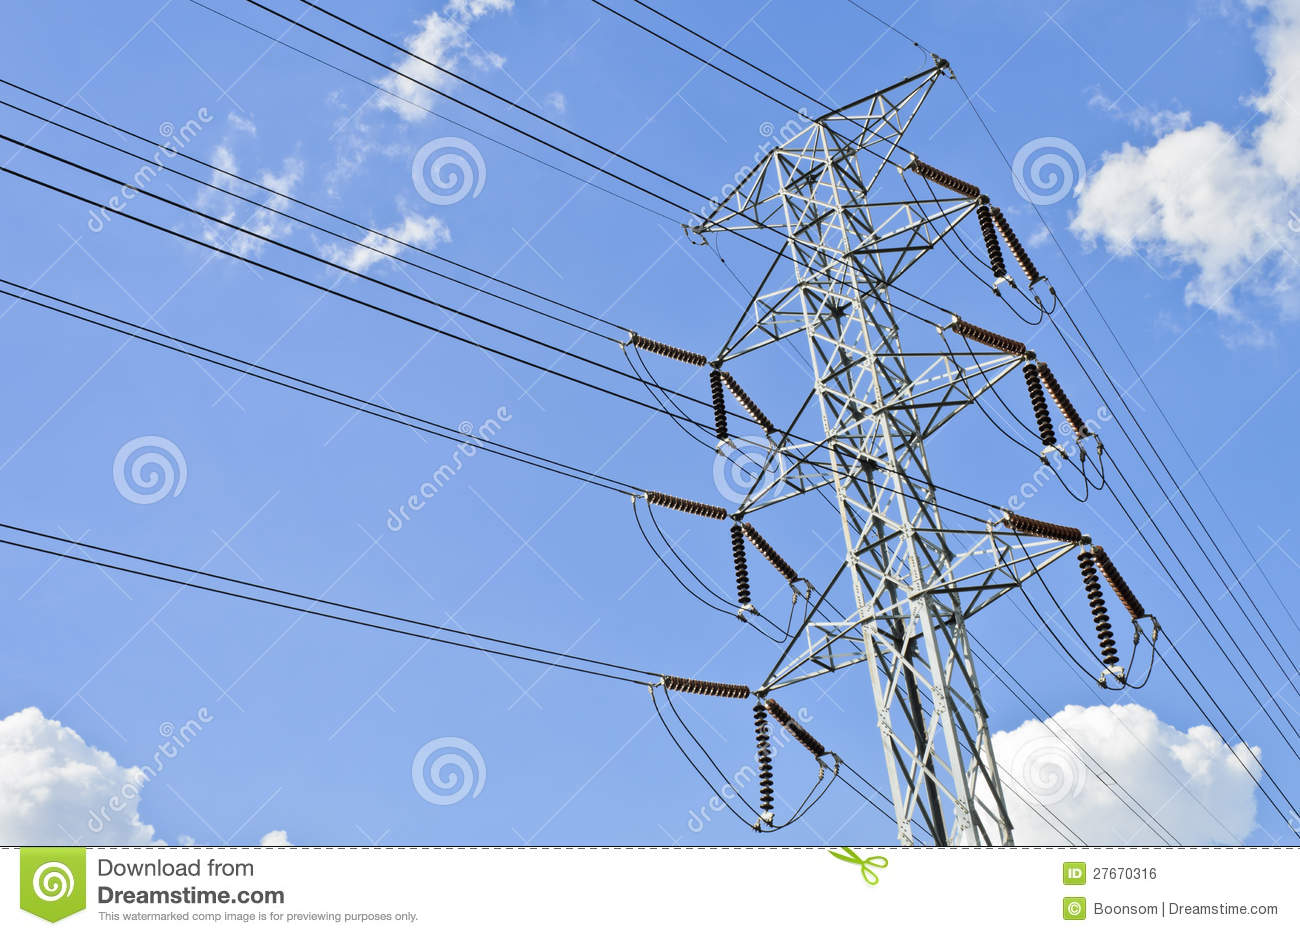 Transmission Tower Royalty Free Stock Image - Image: 27670316